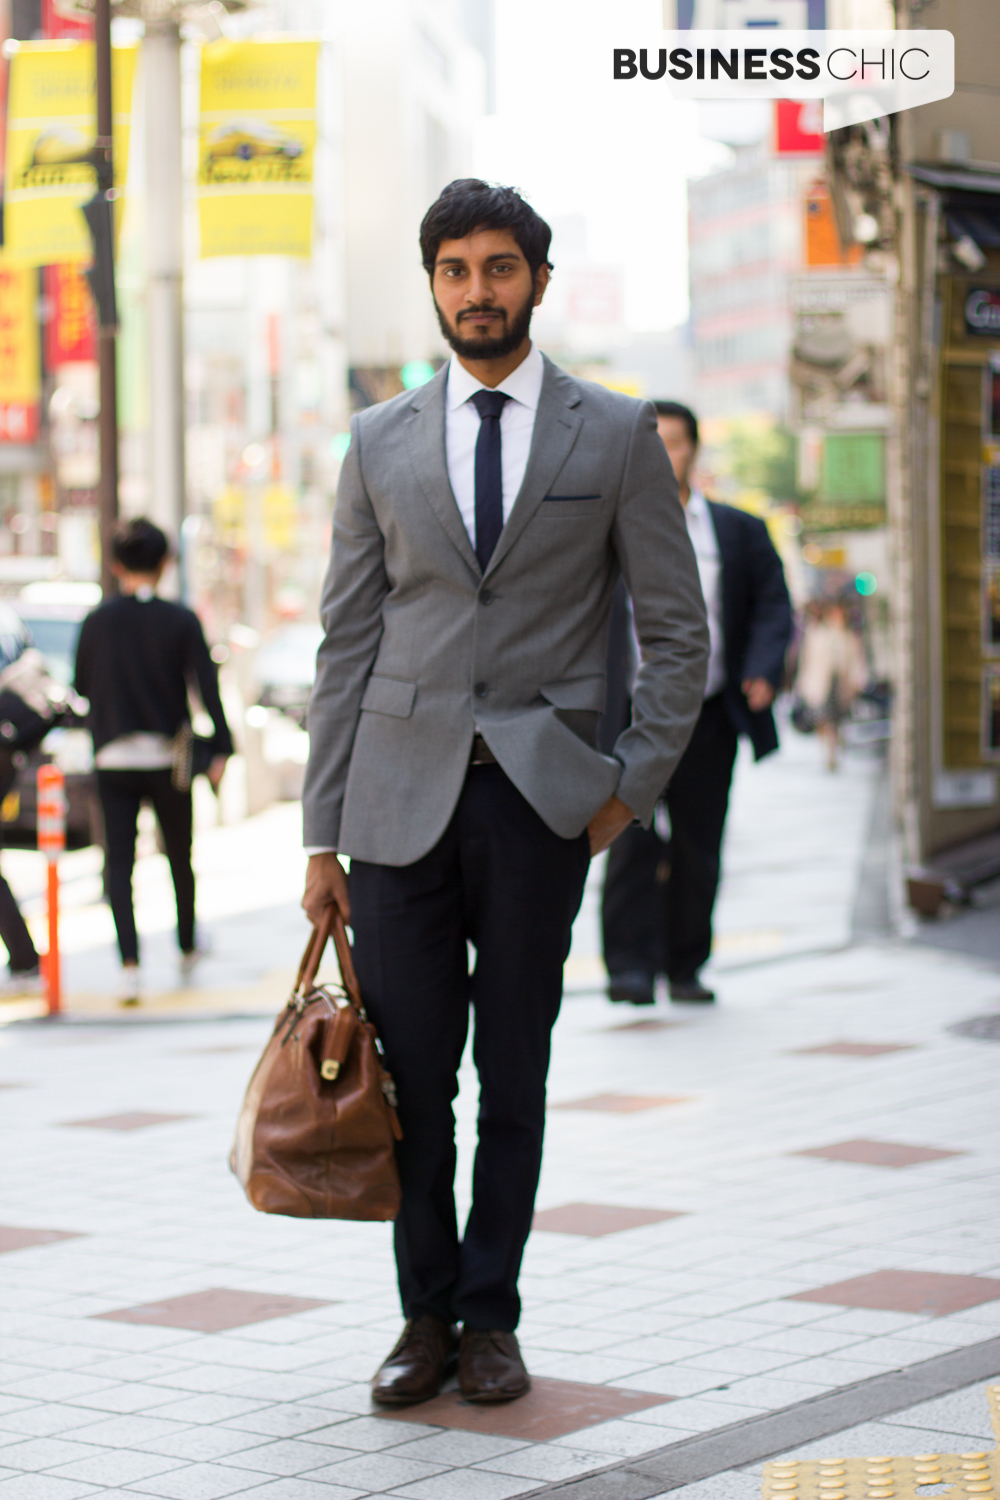 How To Wear a Grey Blazer With a Navy Tie | Men's Fashion